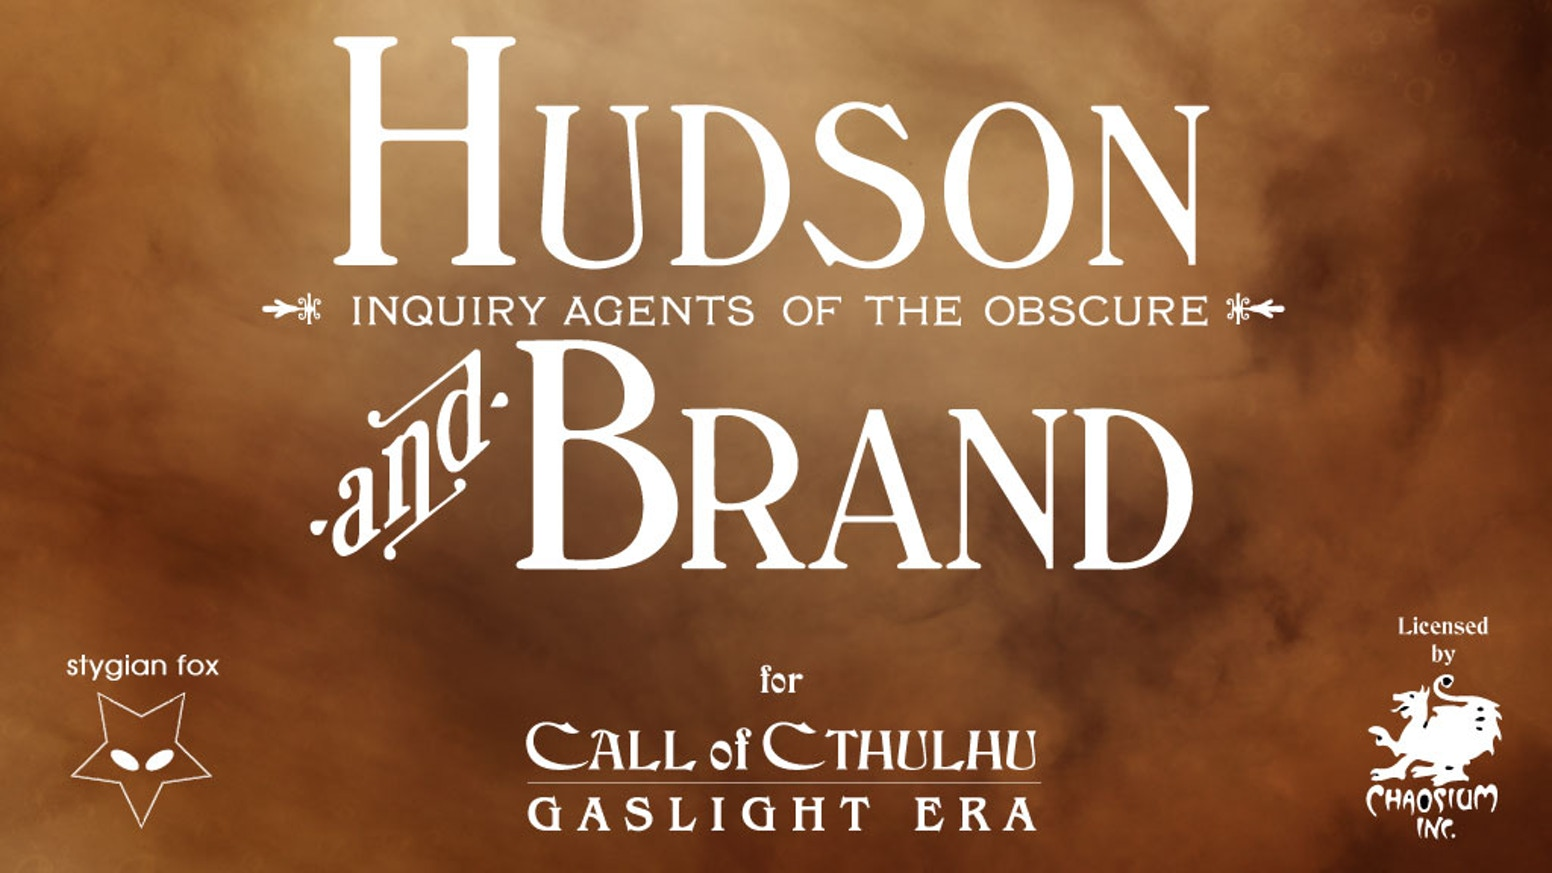 Hudson & Brand is a Call of Cthulhu book for the Gaslight era and details a ready-made anti-Cthulhu Mythos Victorian organisation.